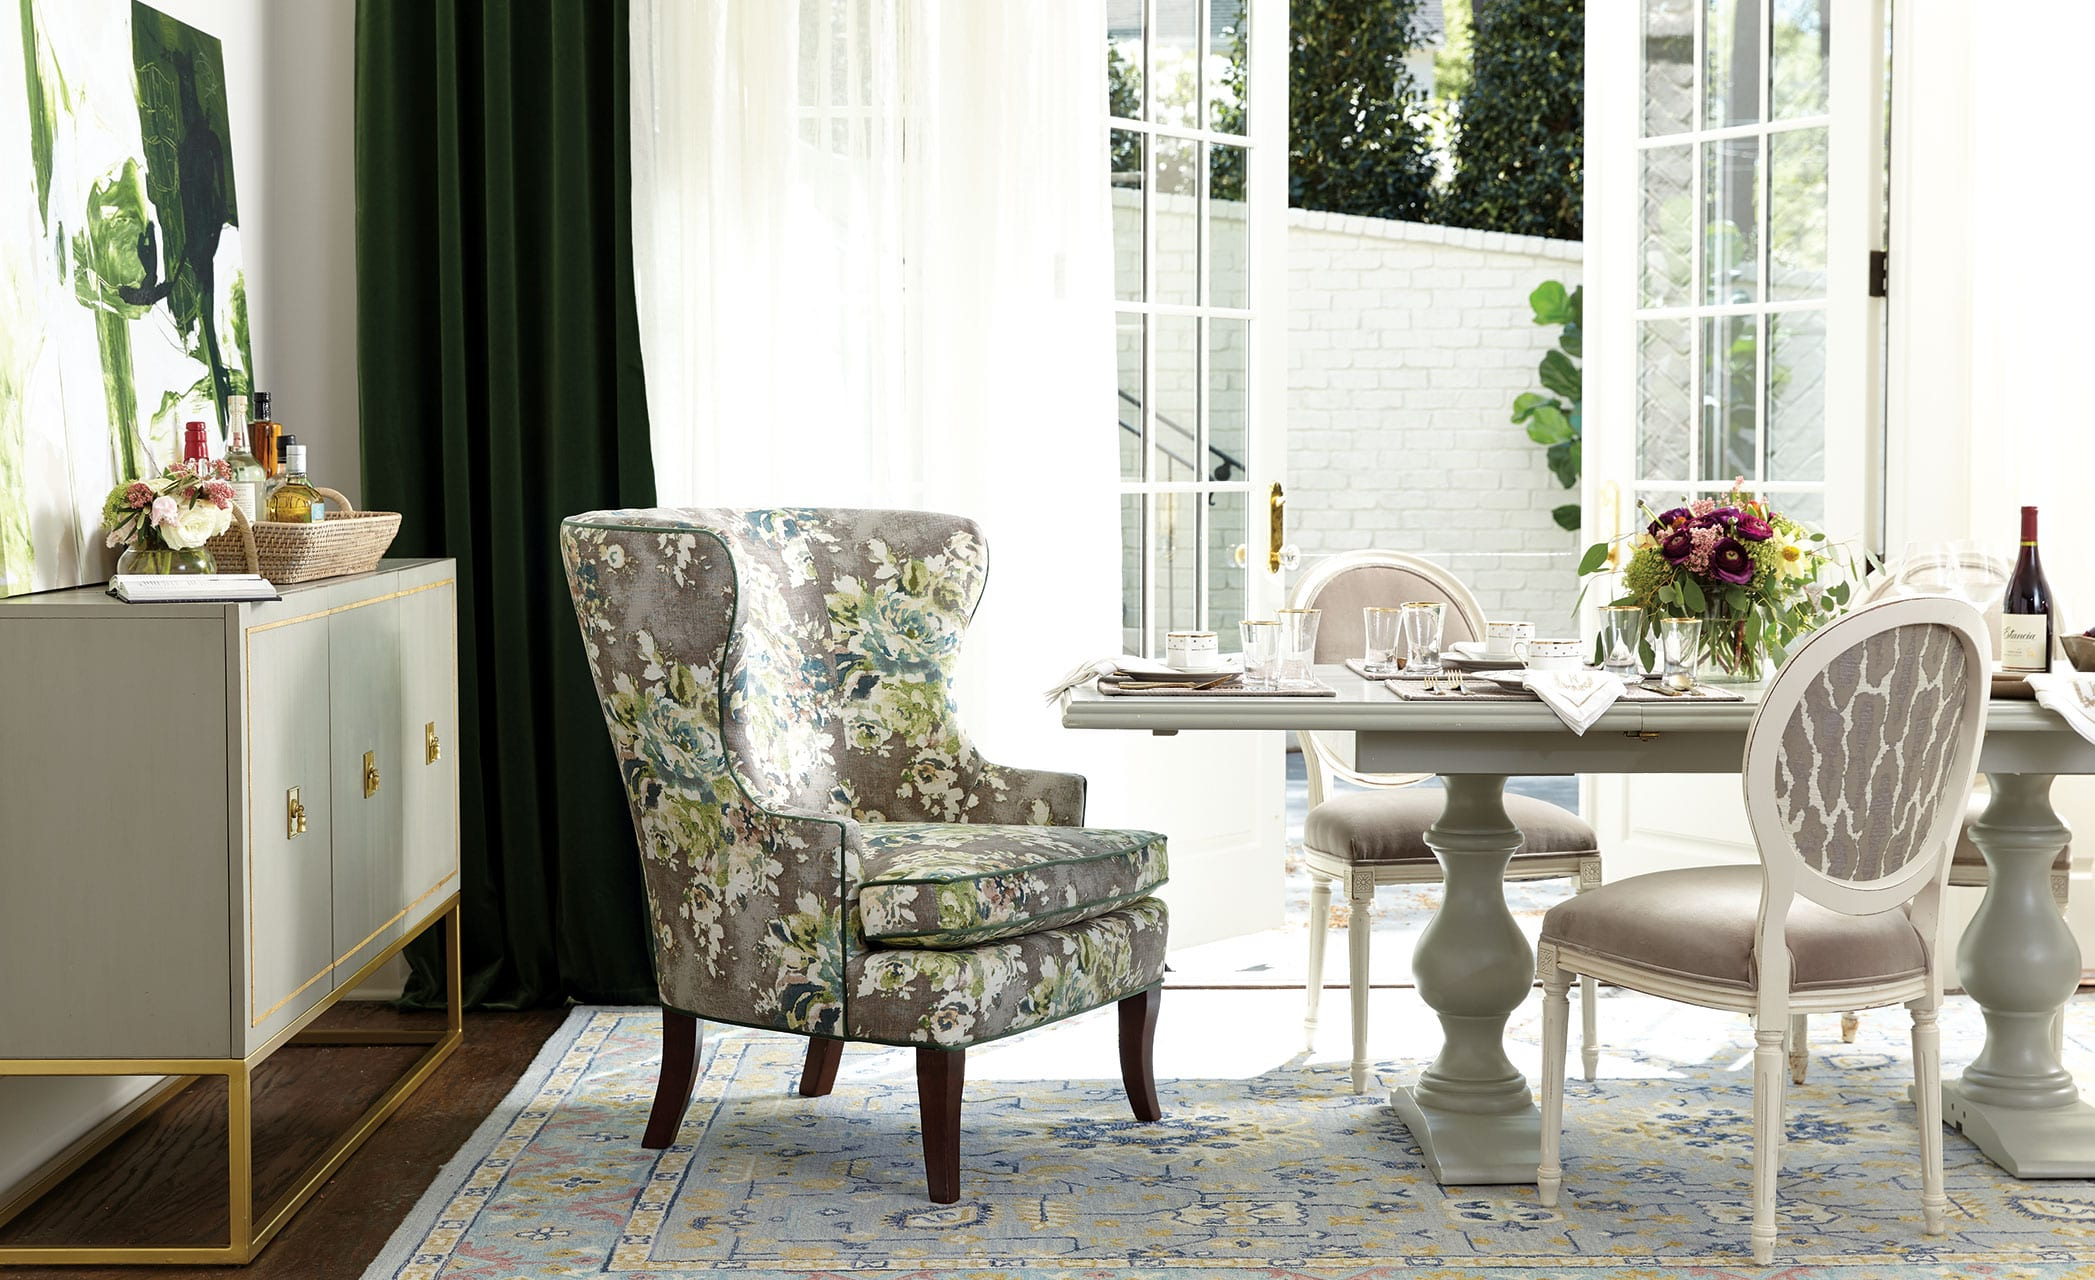 How To Pick The Right Dining Chair Size And Style How To